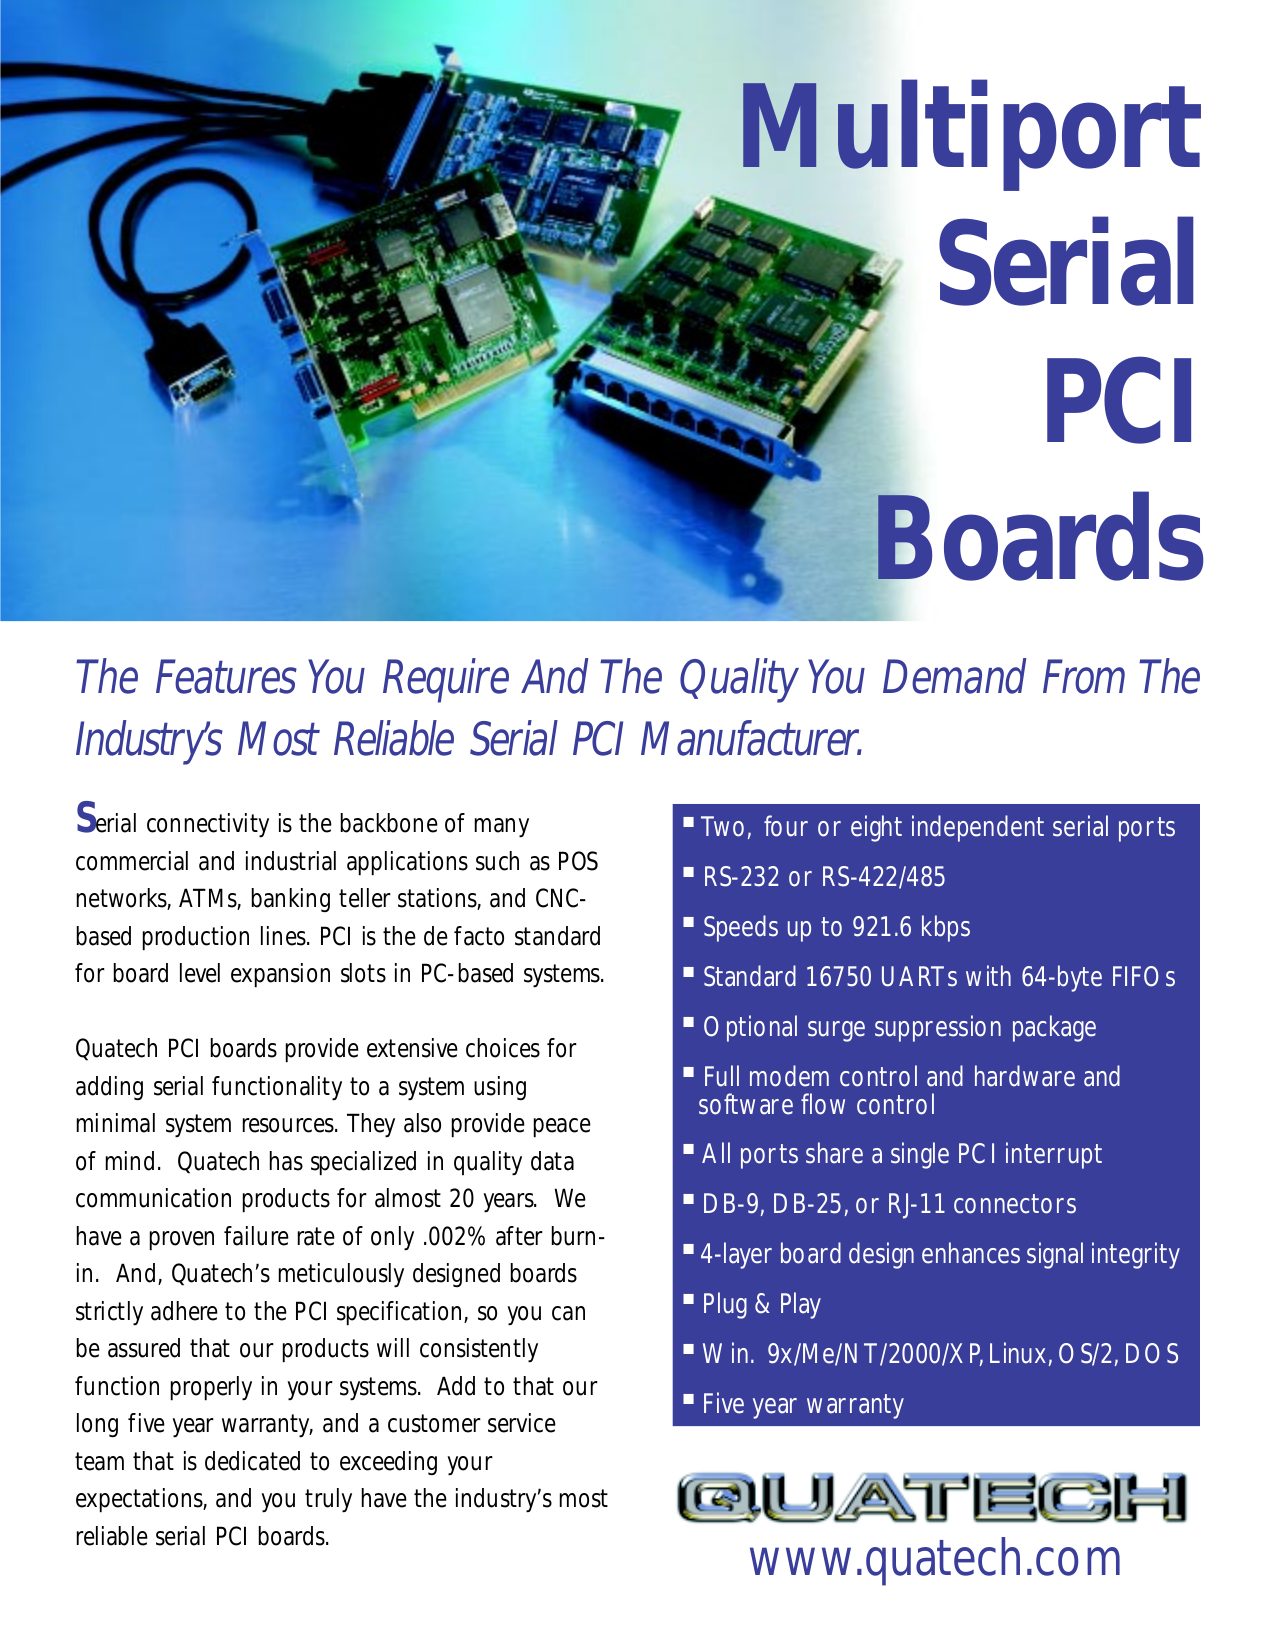 pdf for Quatech Other ESC-100-D9 PCI Serial Boards manual